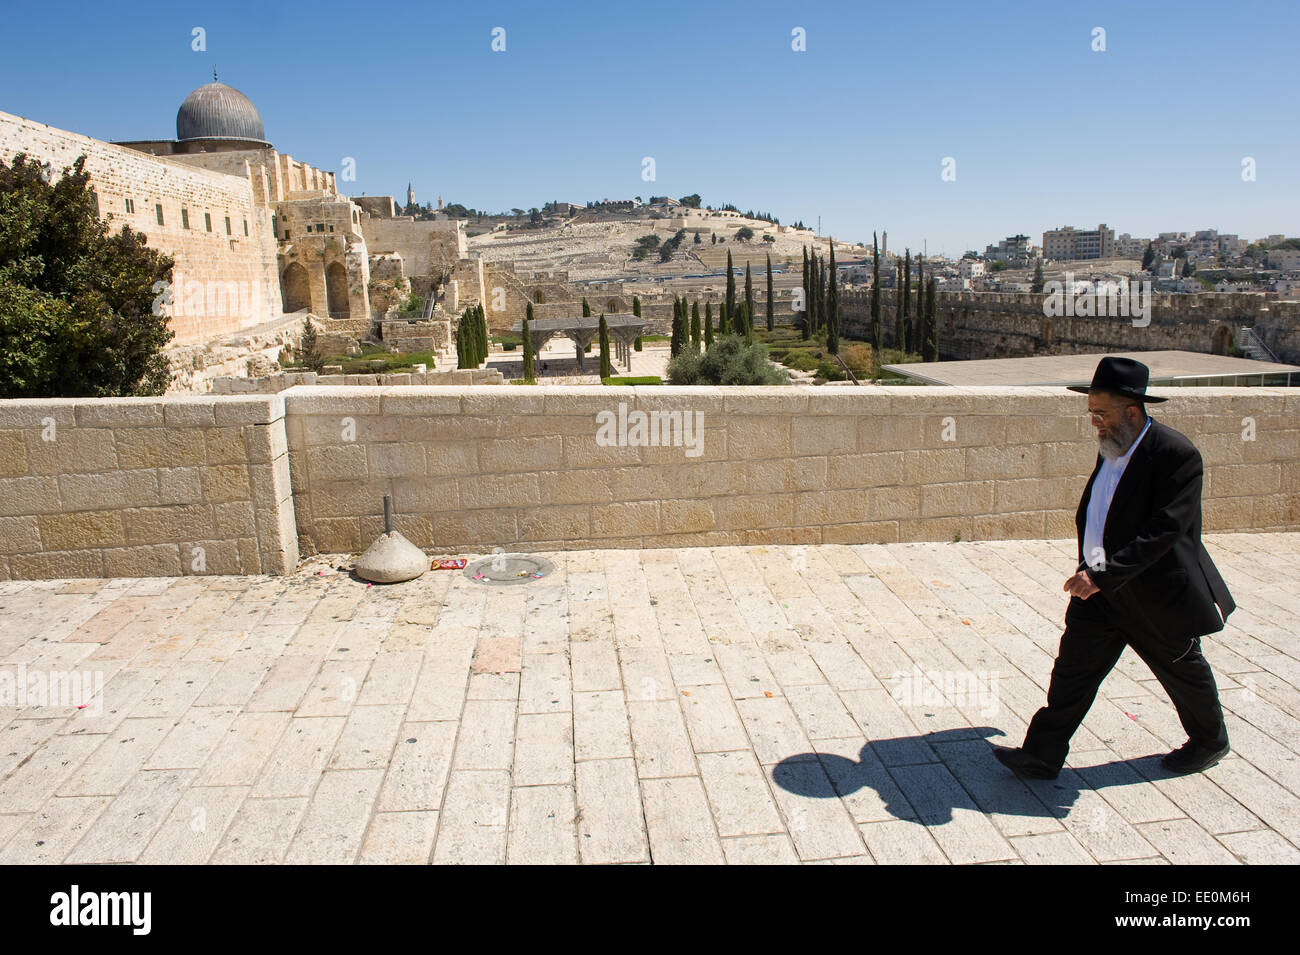 JERUSALEM, ISRAEL - OCT 06, 2014: An orthodox jewish man is walking on the street just southwest of the temple mount. - Stock Image